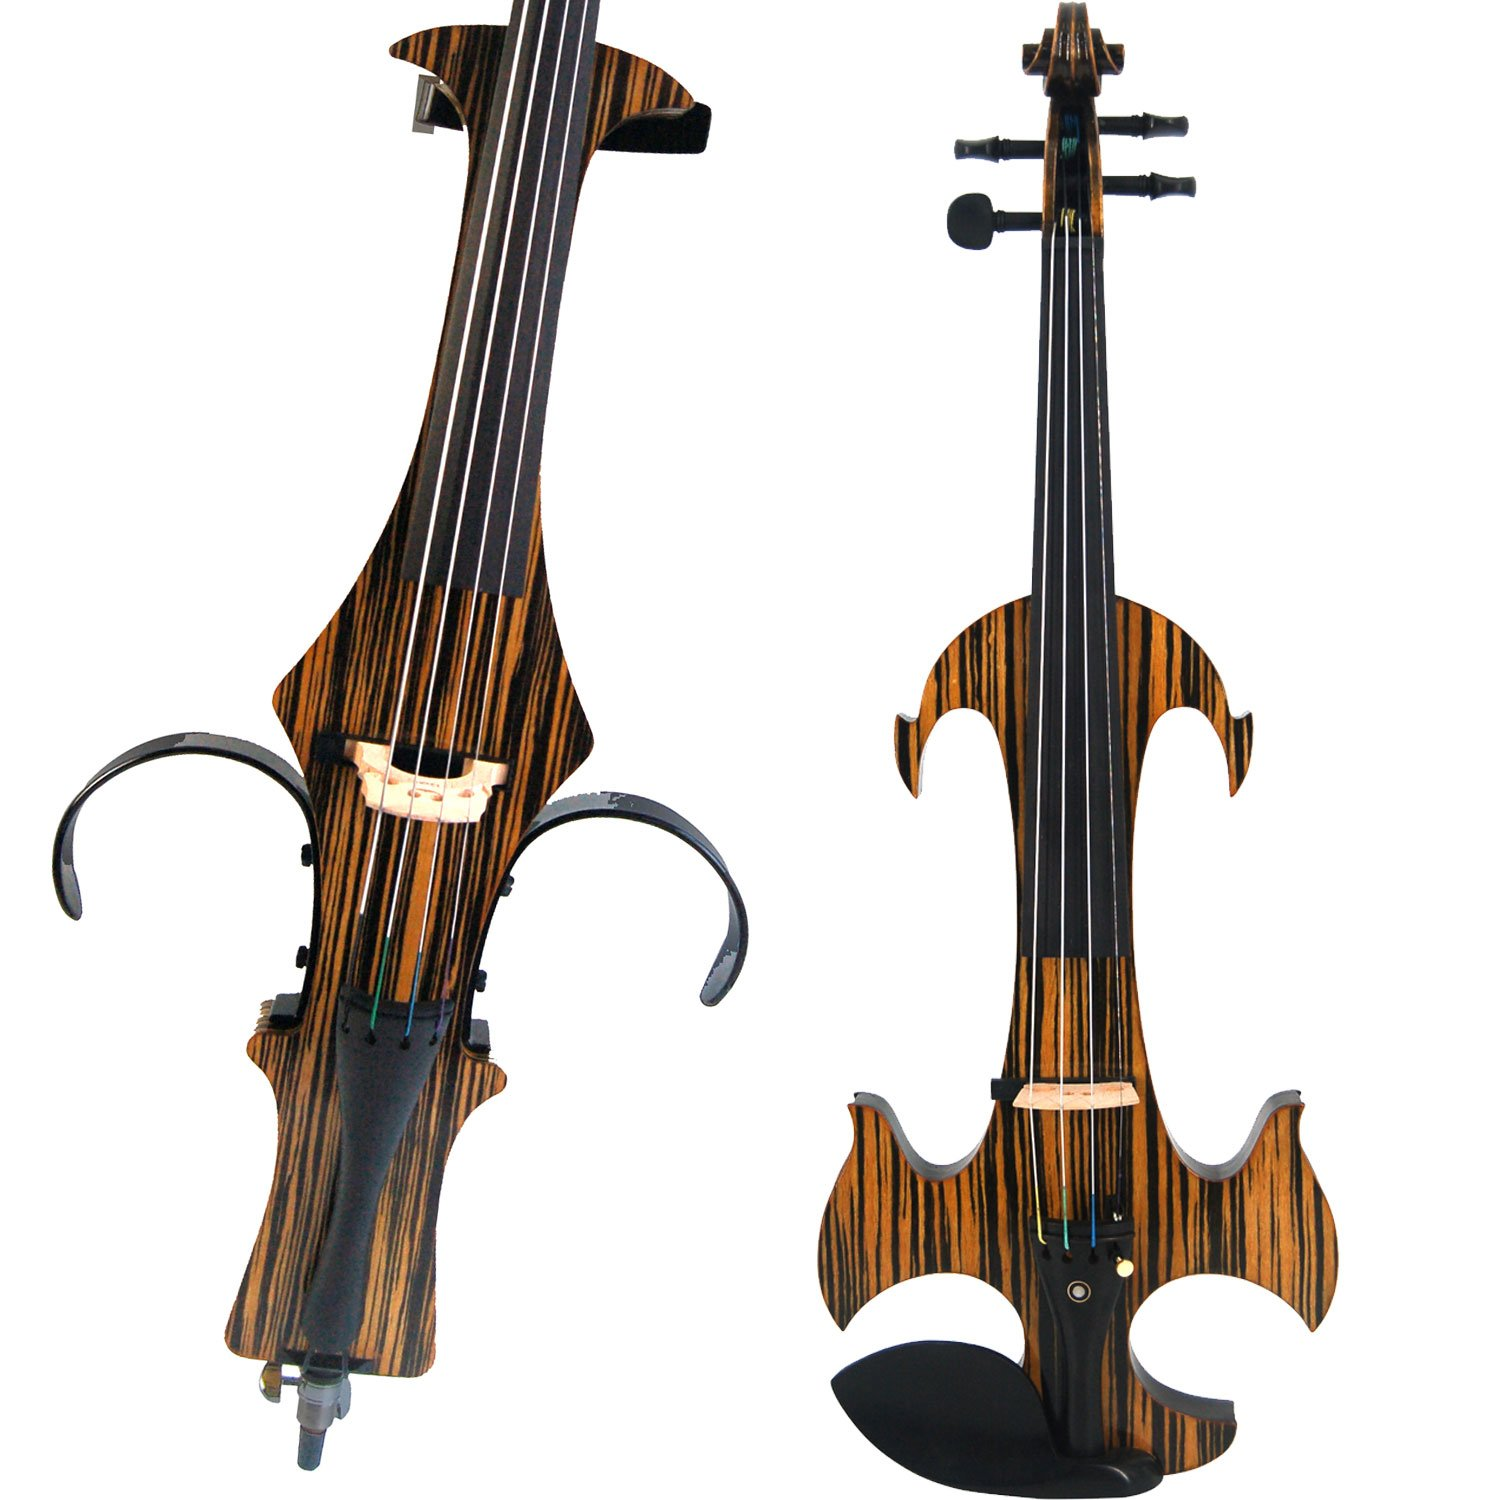 Leeche Handmade Professional Solid Wood Electric Cello 4/4 Full Size Silent Electric Cello-N1805 by Leeche